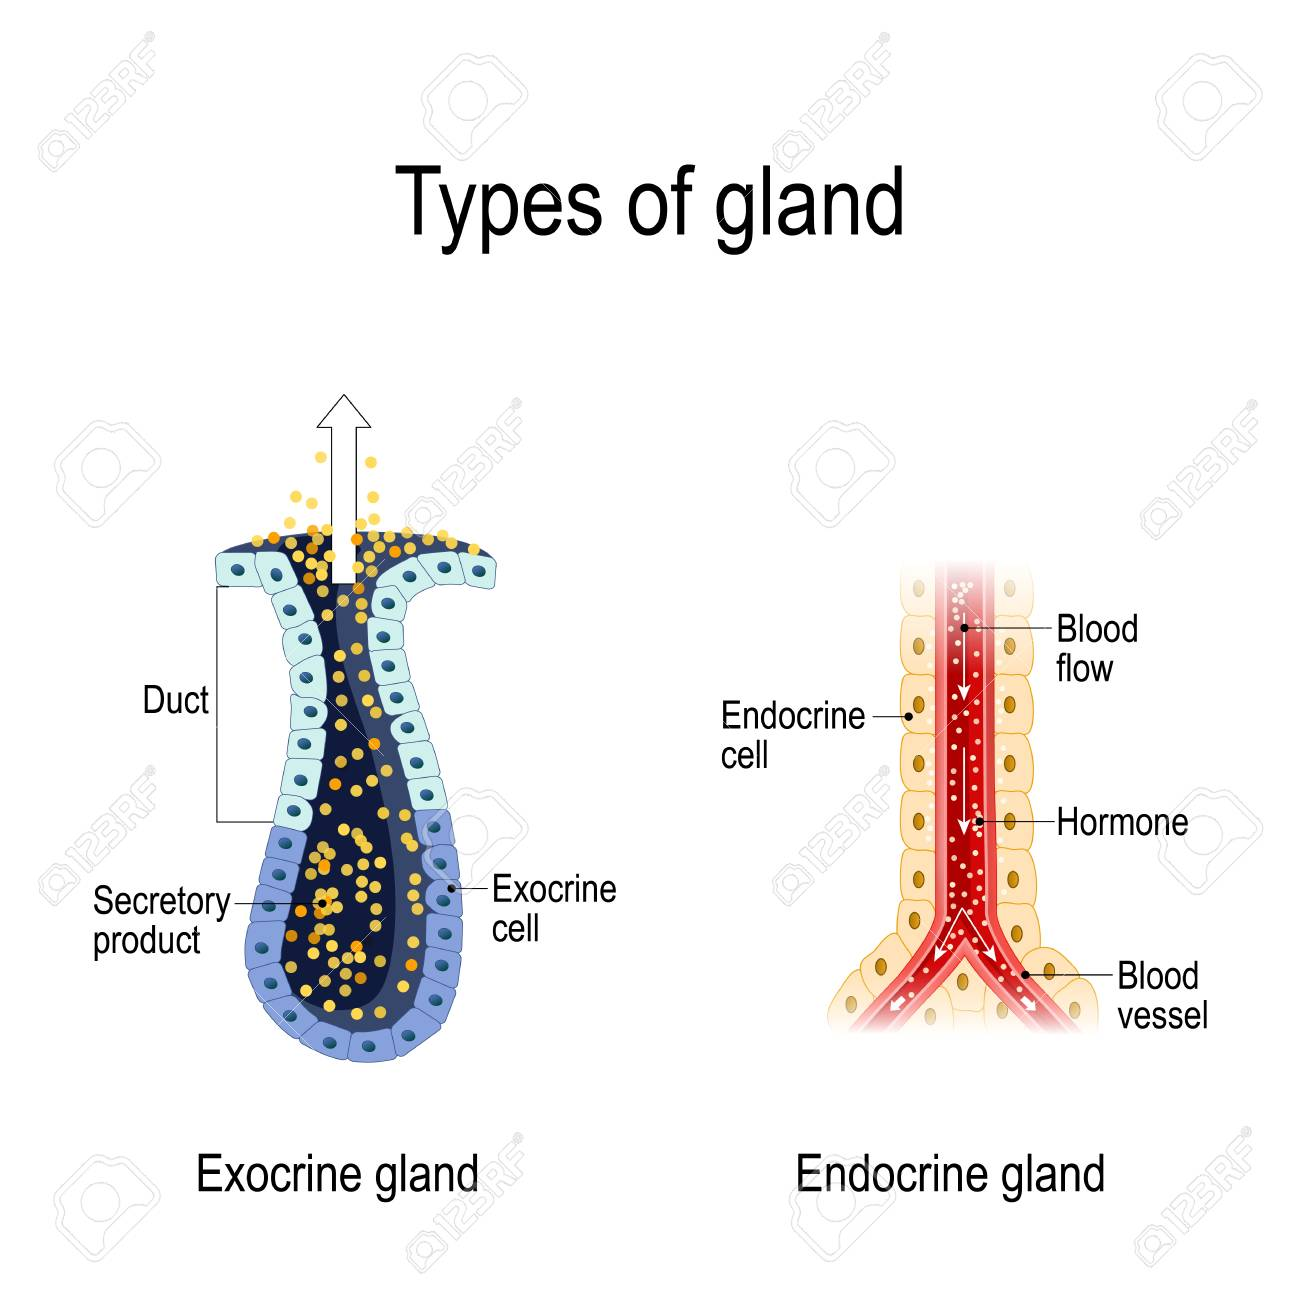 Types Of Gland Anatomy Of An Endocrine And Exocrine Glands